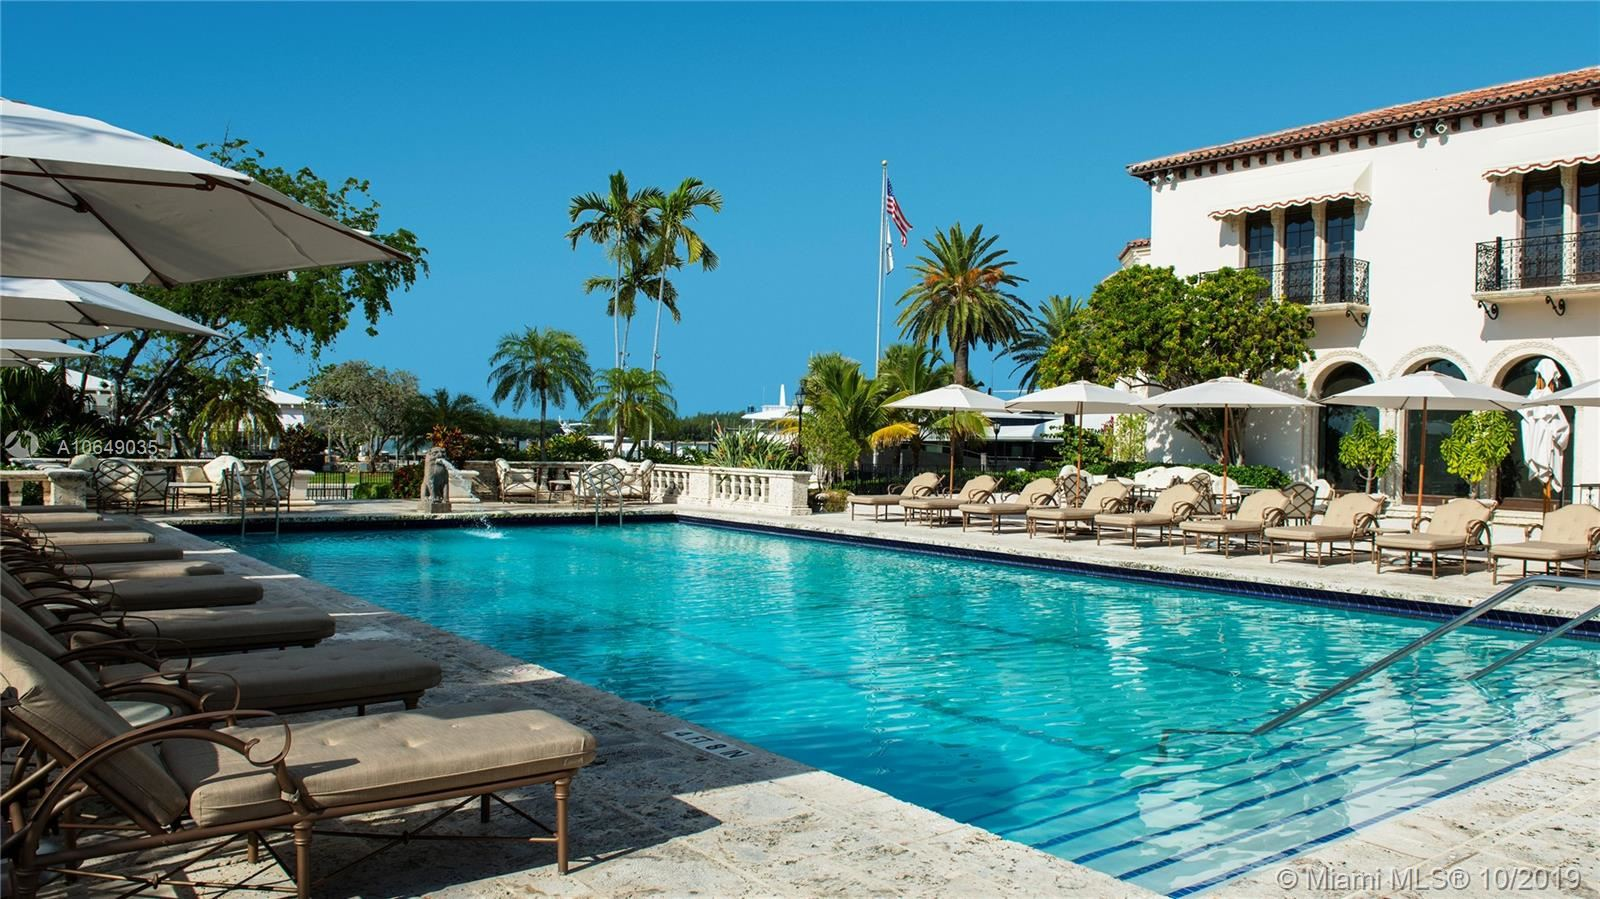 Photo 31 of Listing MLS a10649035 in 7073 Fisher Island Dr #7073 Miami Beach FL 33139